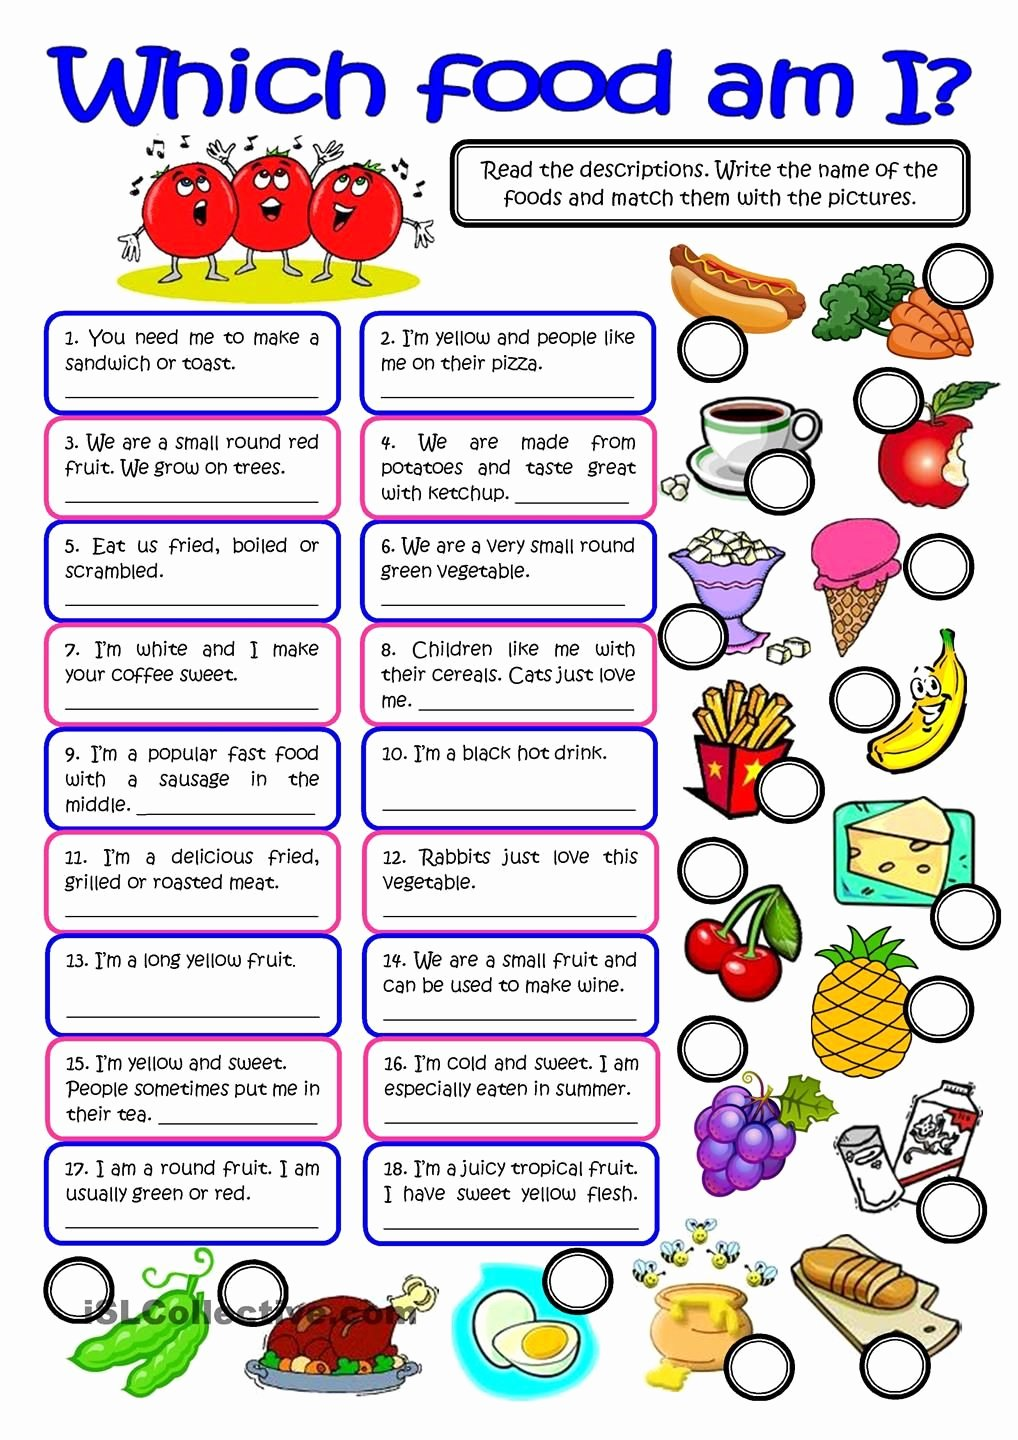 Basic Cooking Terms Worksheet Answers Luxury which Food Am I Vocabulary Practice